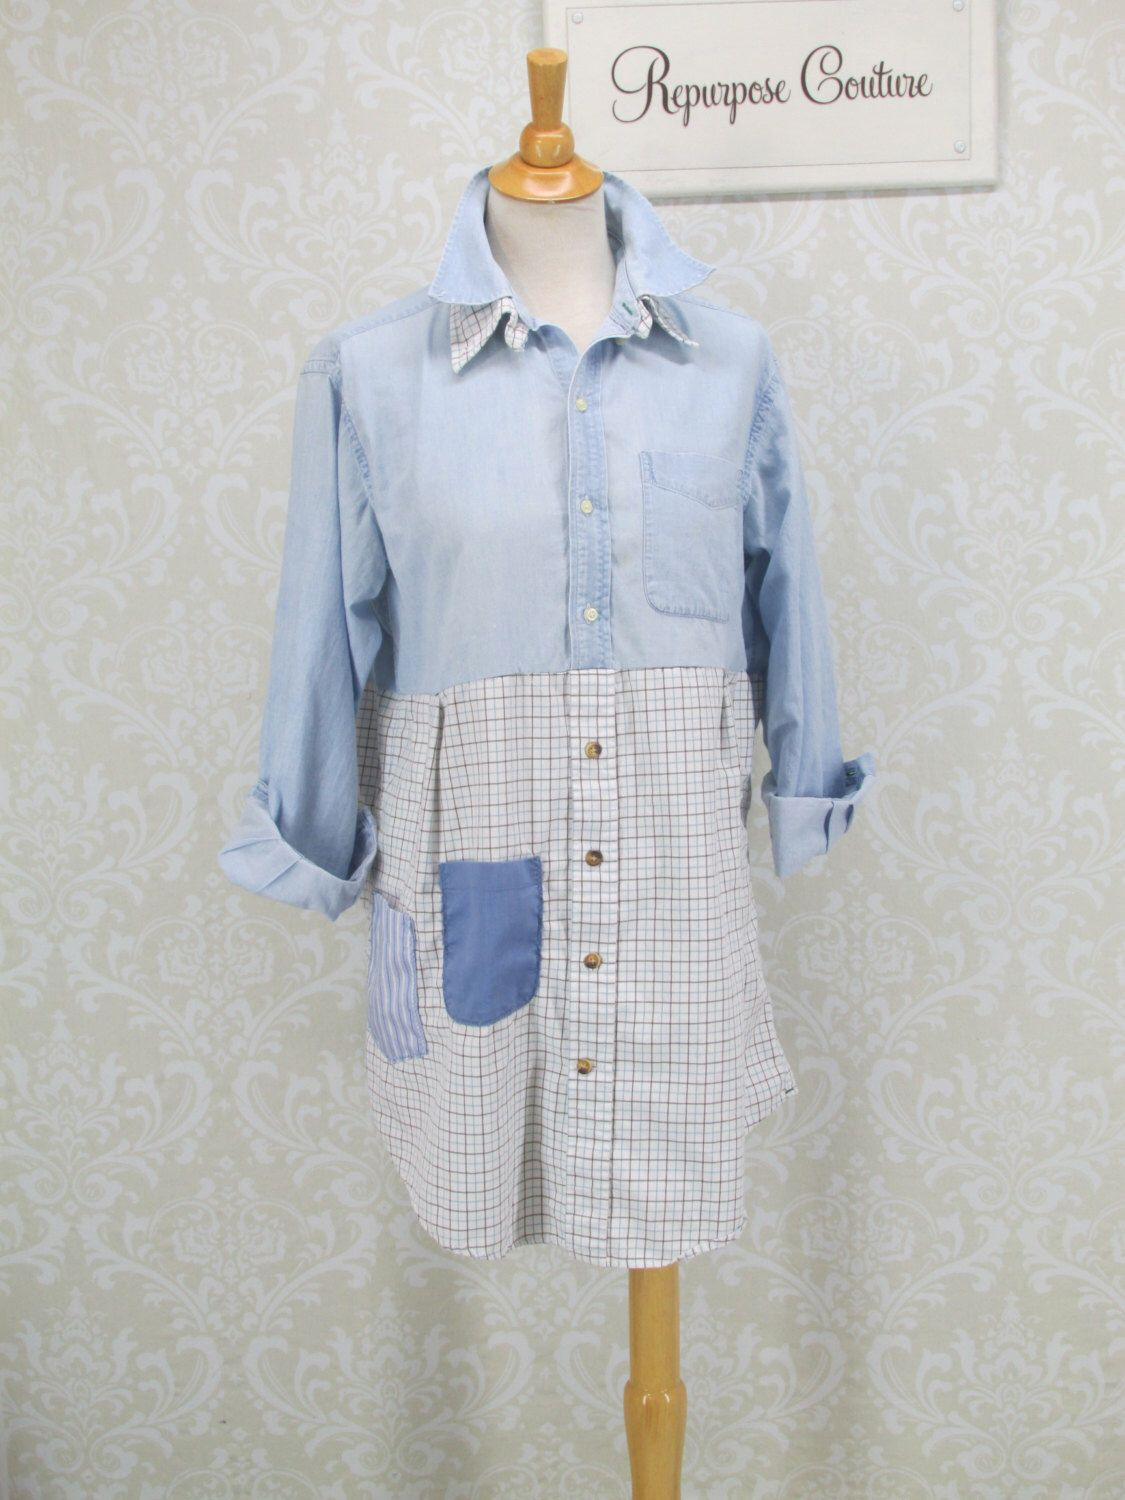 Womens Size L XL, Upcycled Tunic Dress, Denim Shirt, Plaid Shirt, Recycled Clothing, Boho Clothing, Bohemian Dress, Lagenlook Clothing by RepurposeCouture on Etsy https://www.etsy.com/listing/288732829/womens-size-l-xl-upcycled-tunic-dress